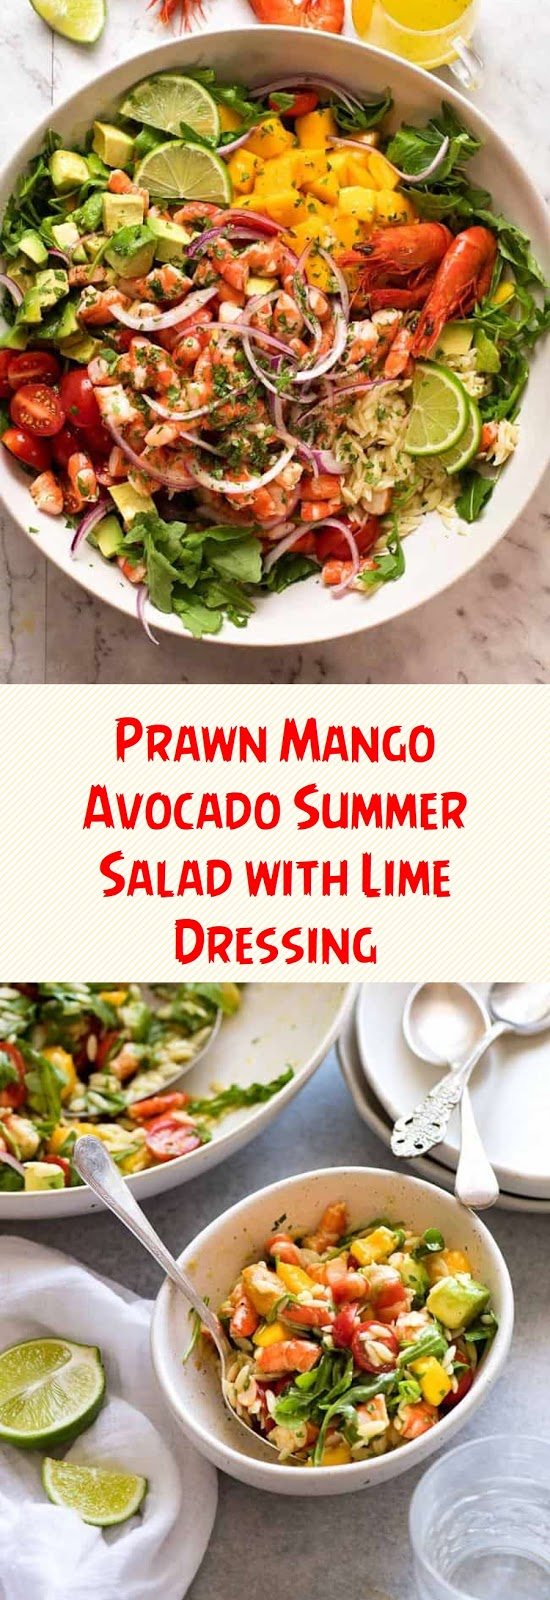 Prawn Mango Avocado Summer Salad with Lime Dressing